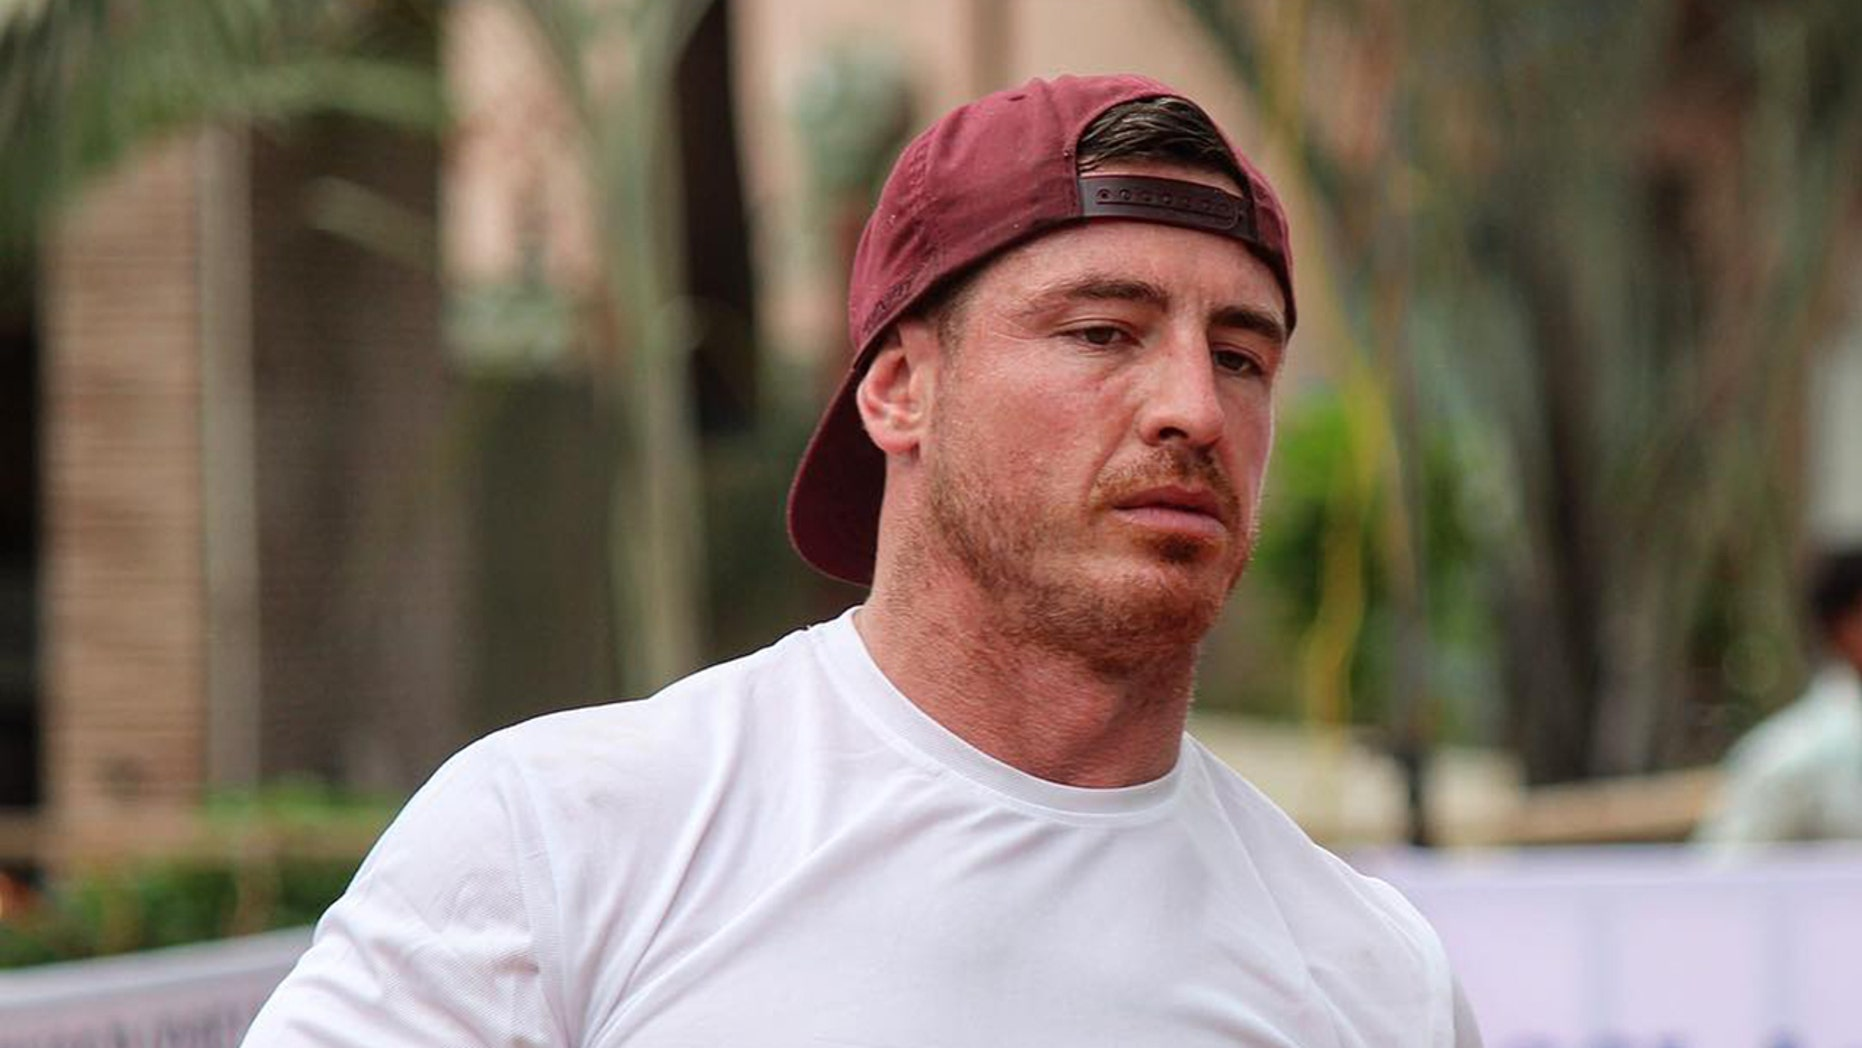 Bradley Soper died after he got into a physical altercation during a botched home invasion in Sydney, Australia, reports said.